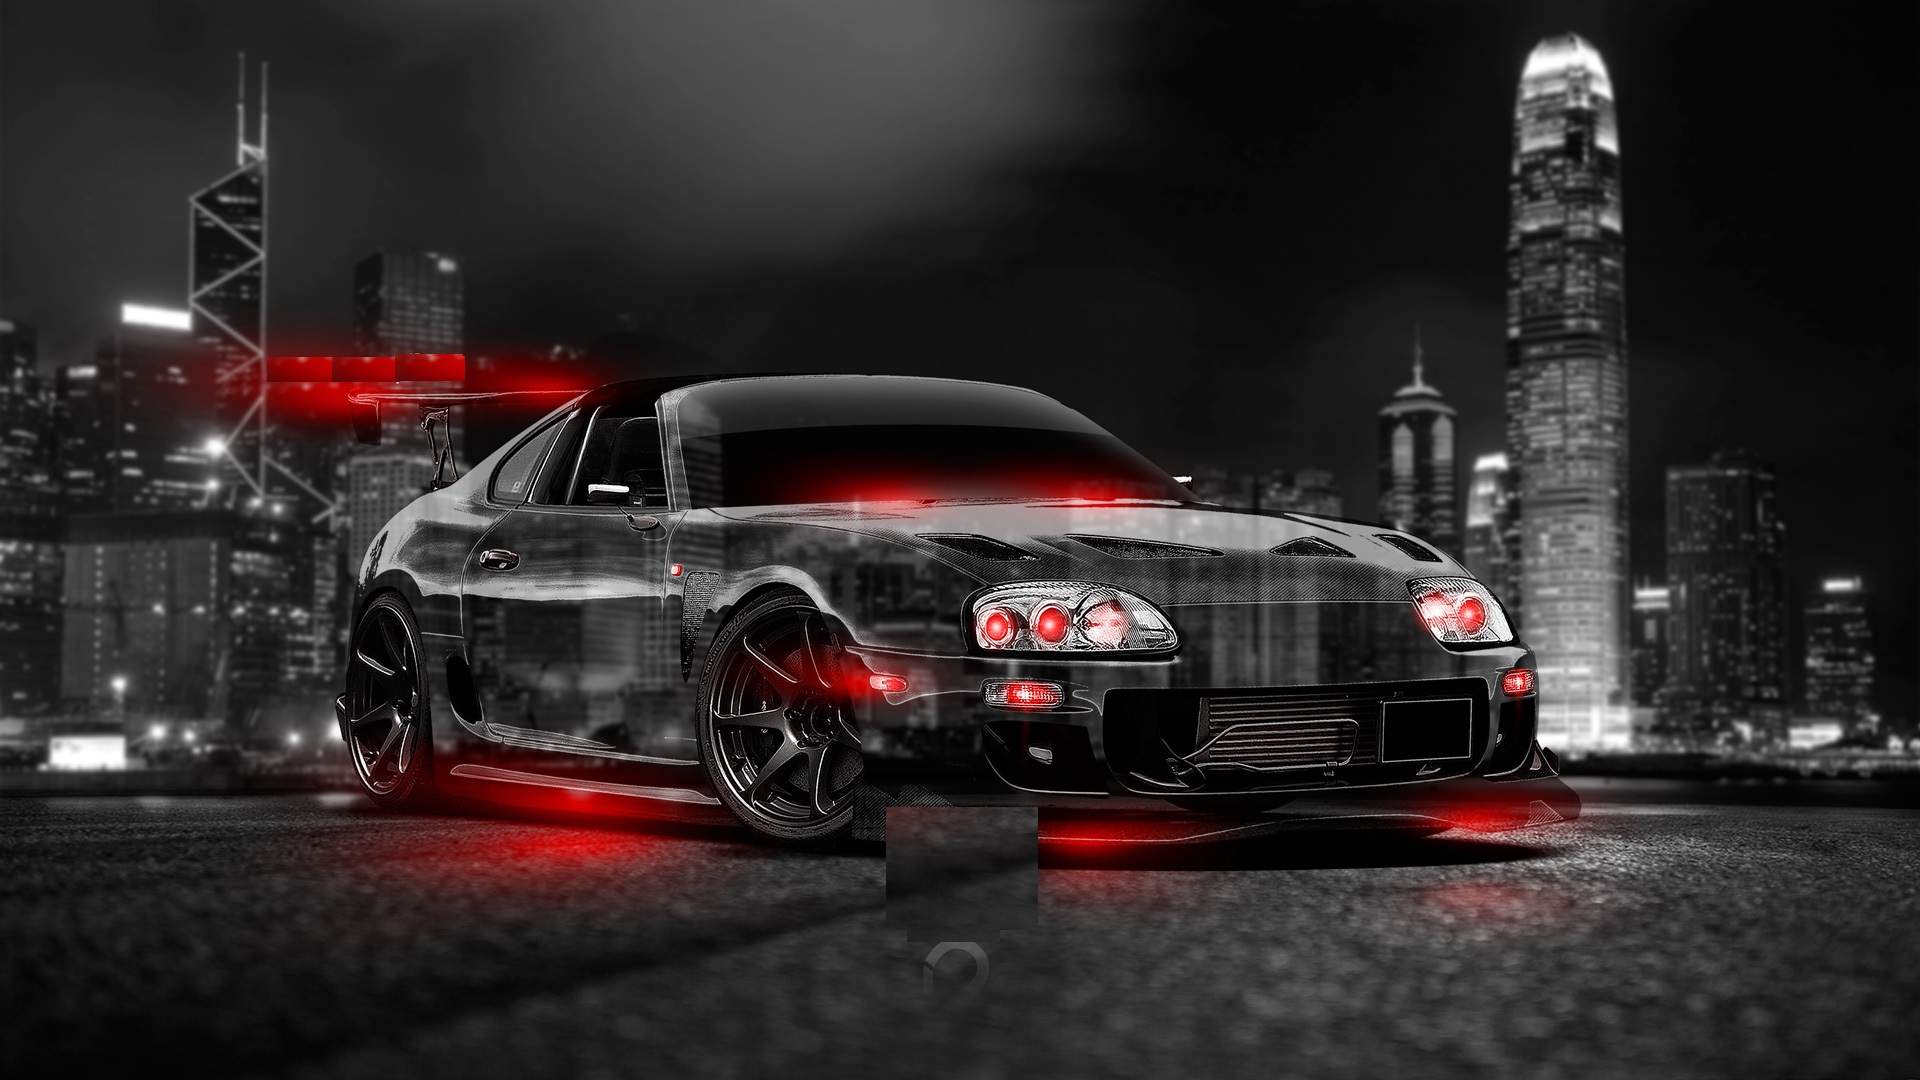 Abstract toyota supra HD Wallpaper - My Site